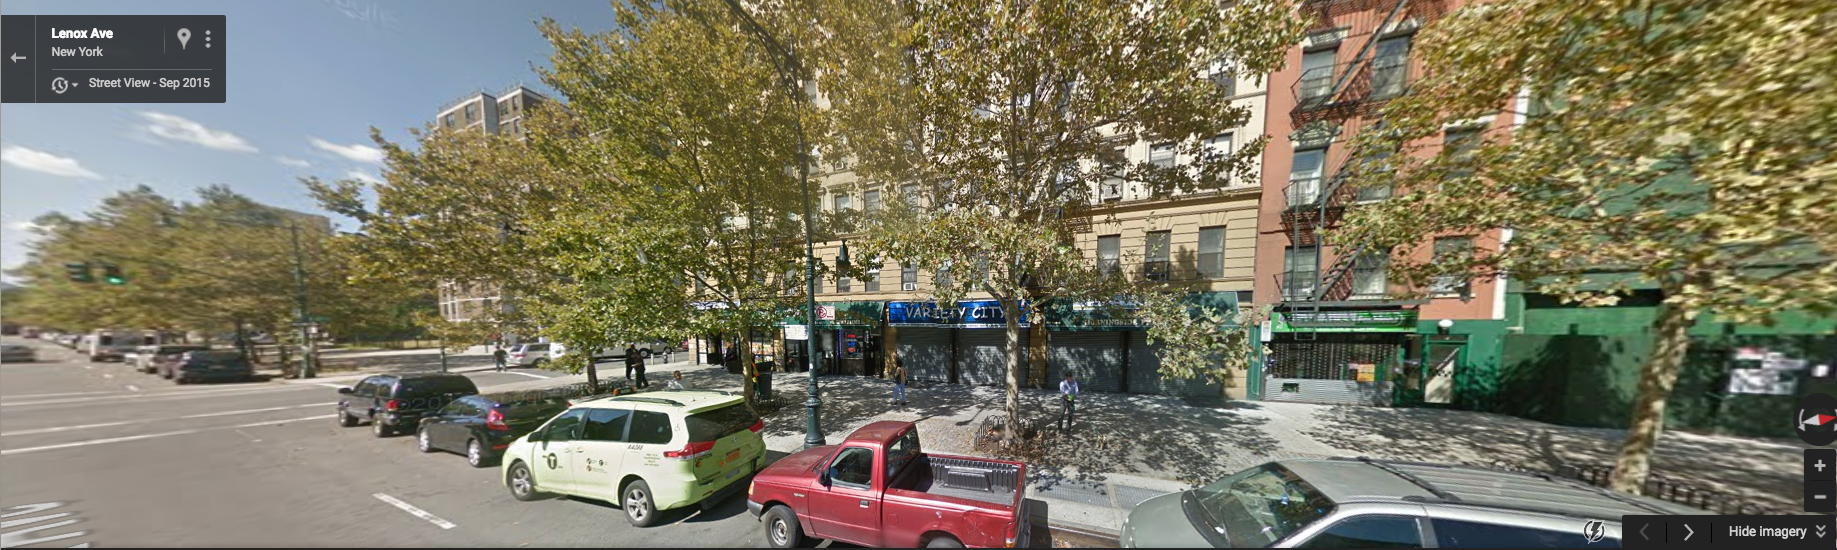 CLICK FOR STREET VIEW